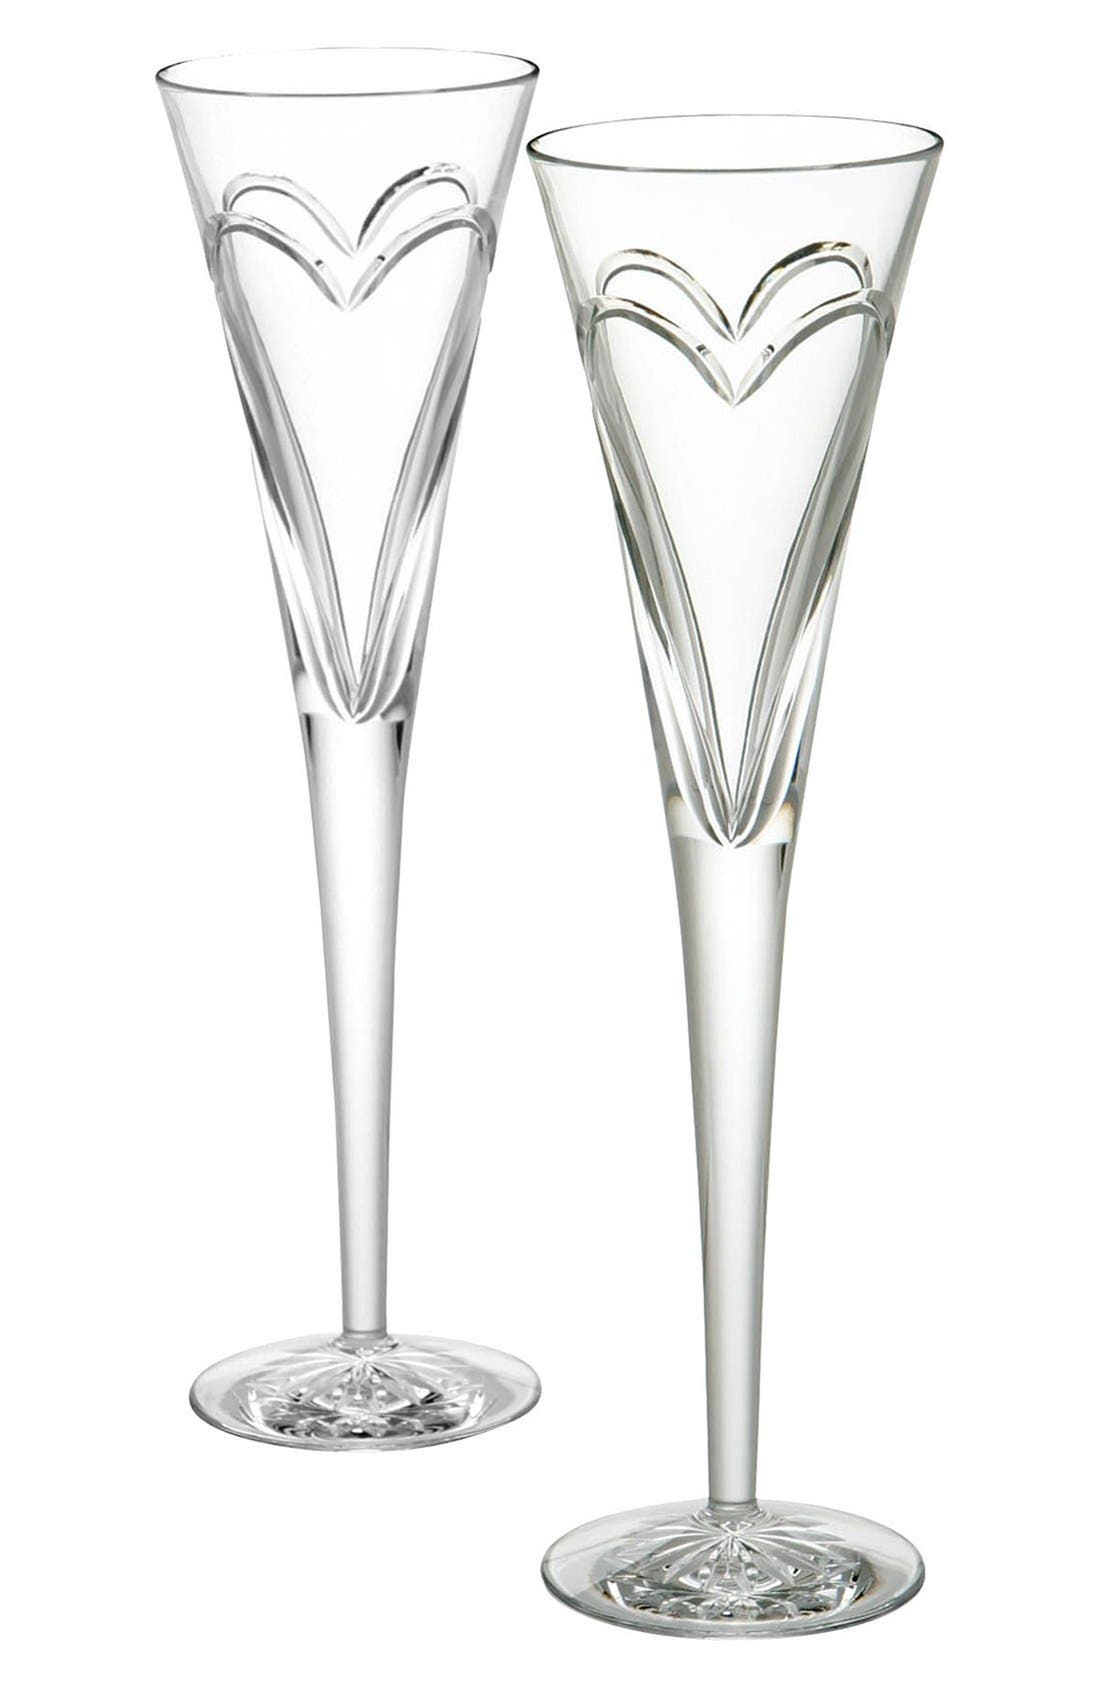 Main Image - Waterford 'Wishes Love & Romance' Lead Crystal Champagne Flutes (Set of 2)